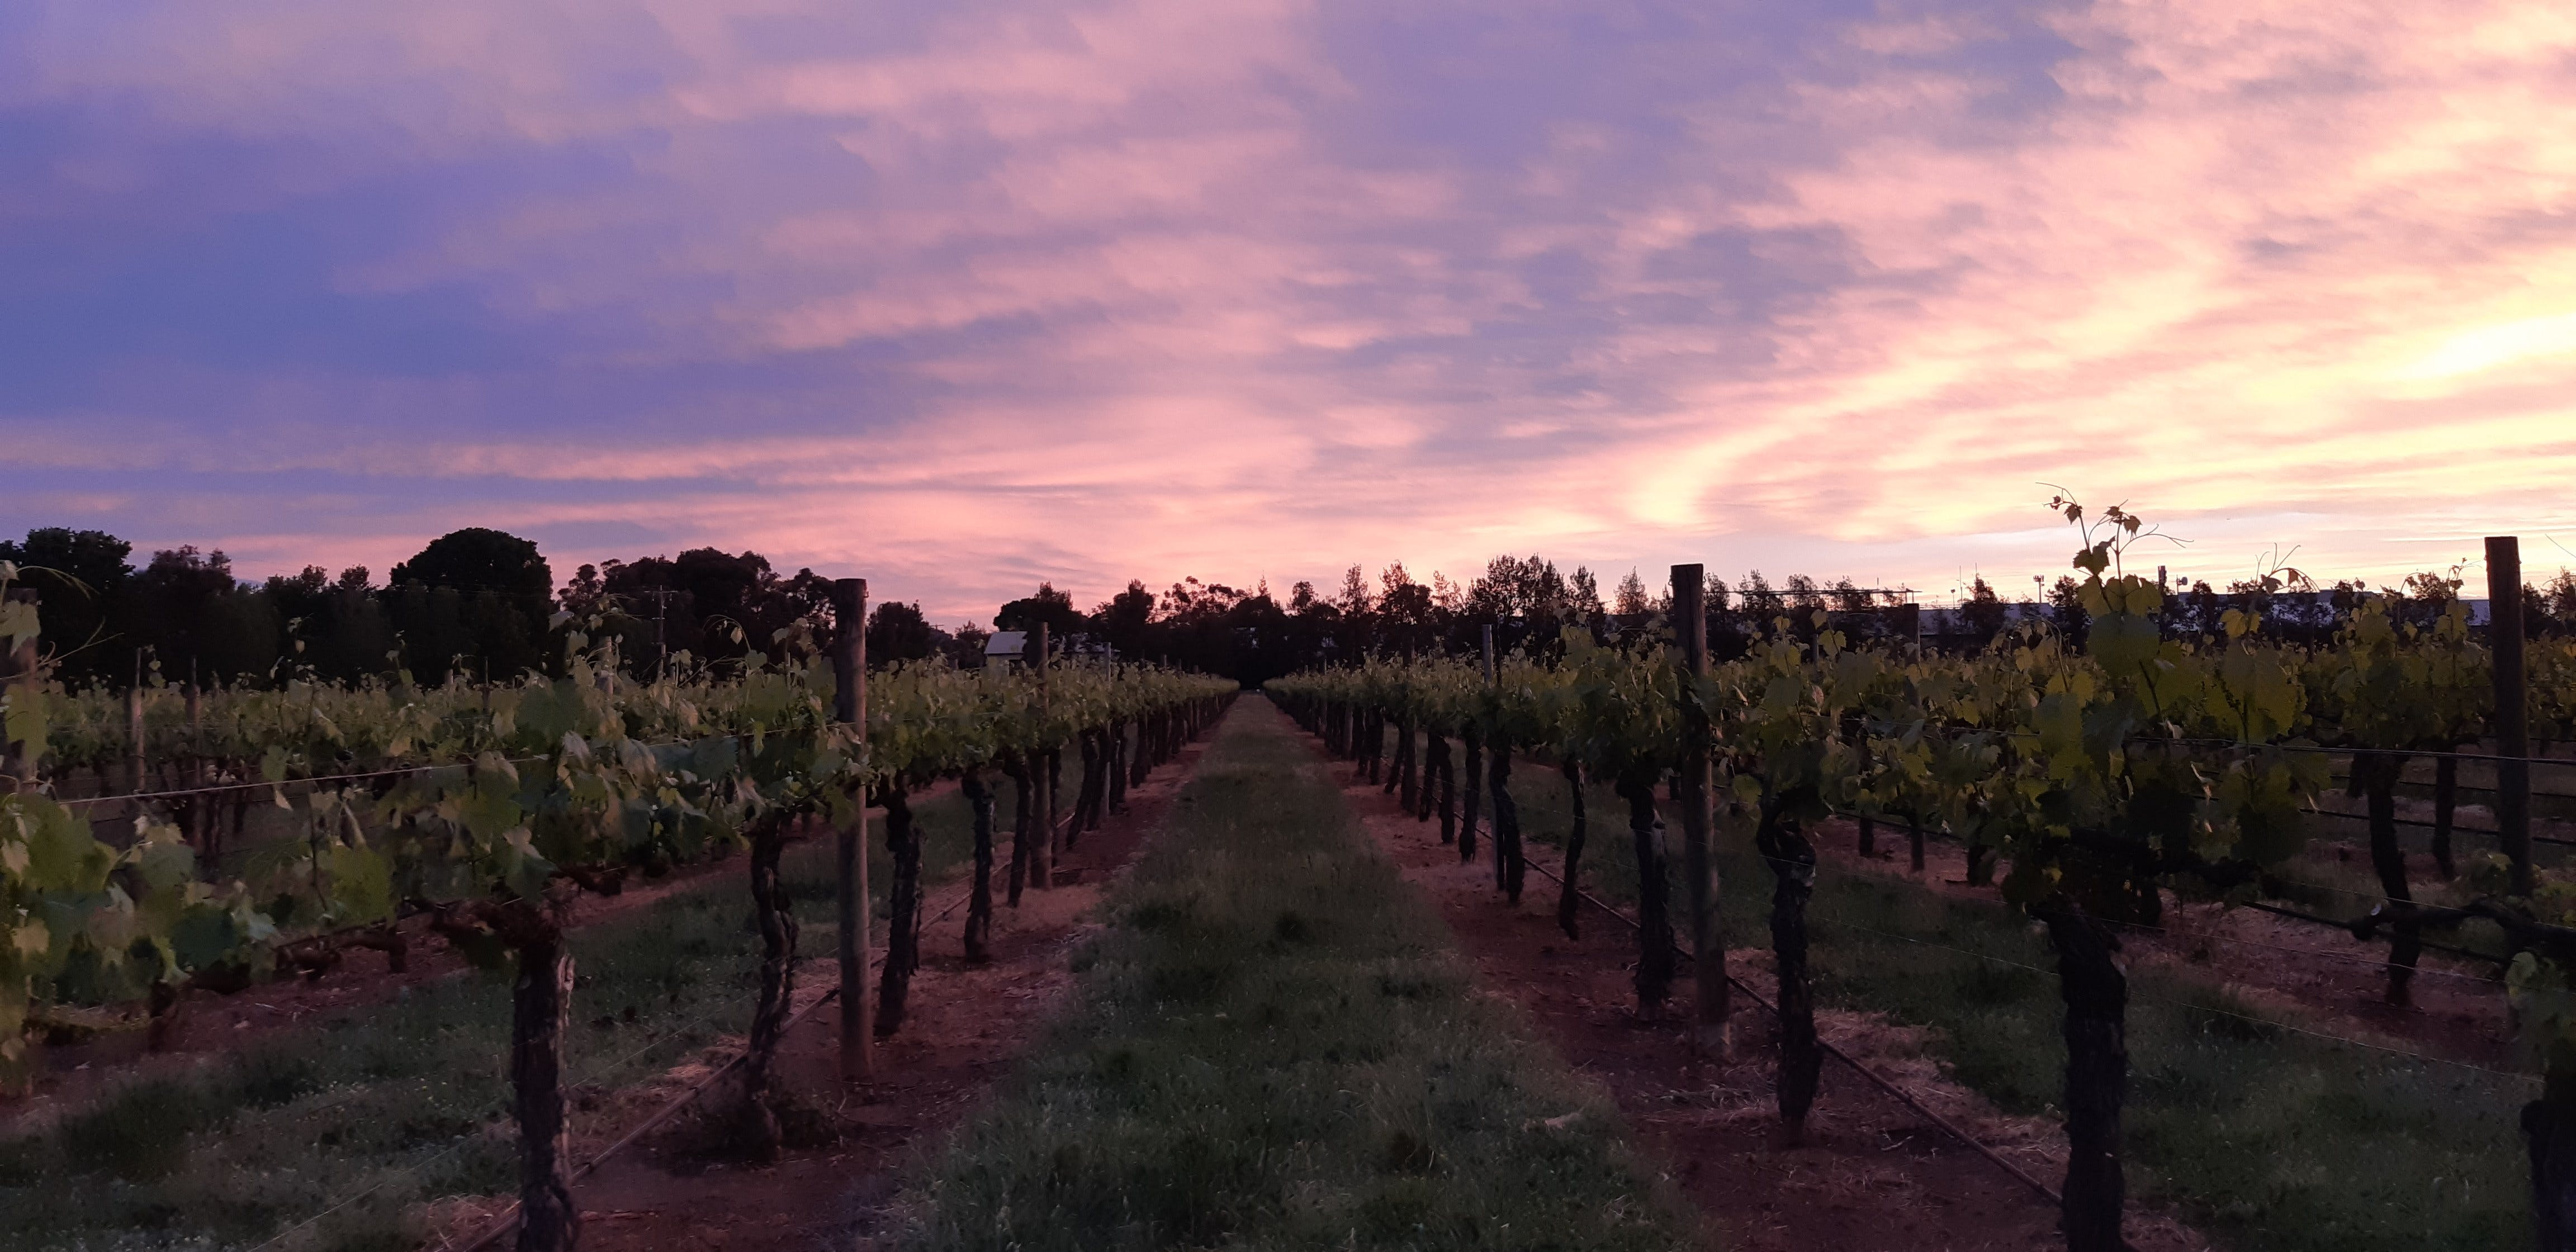 Milawa Vineyard Views - South Australia Travel